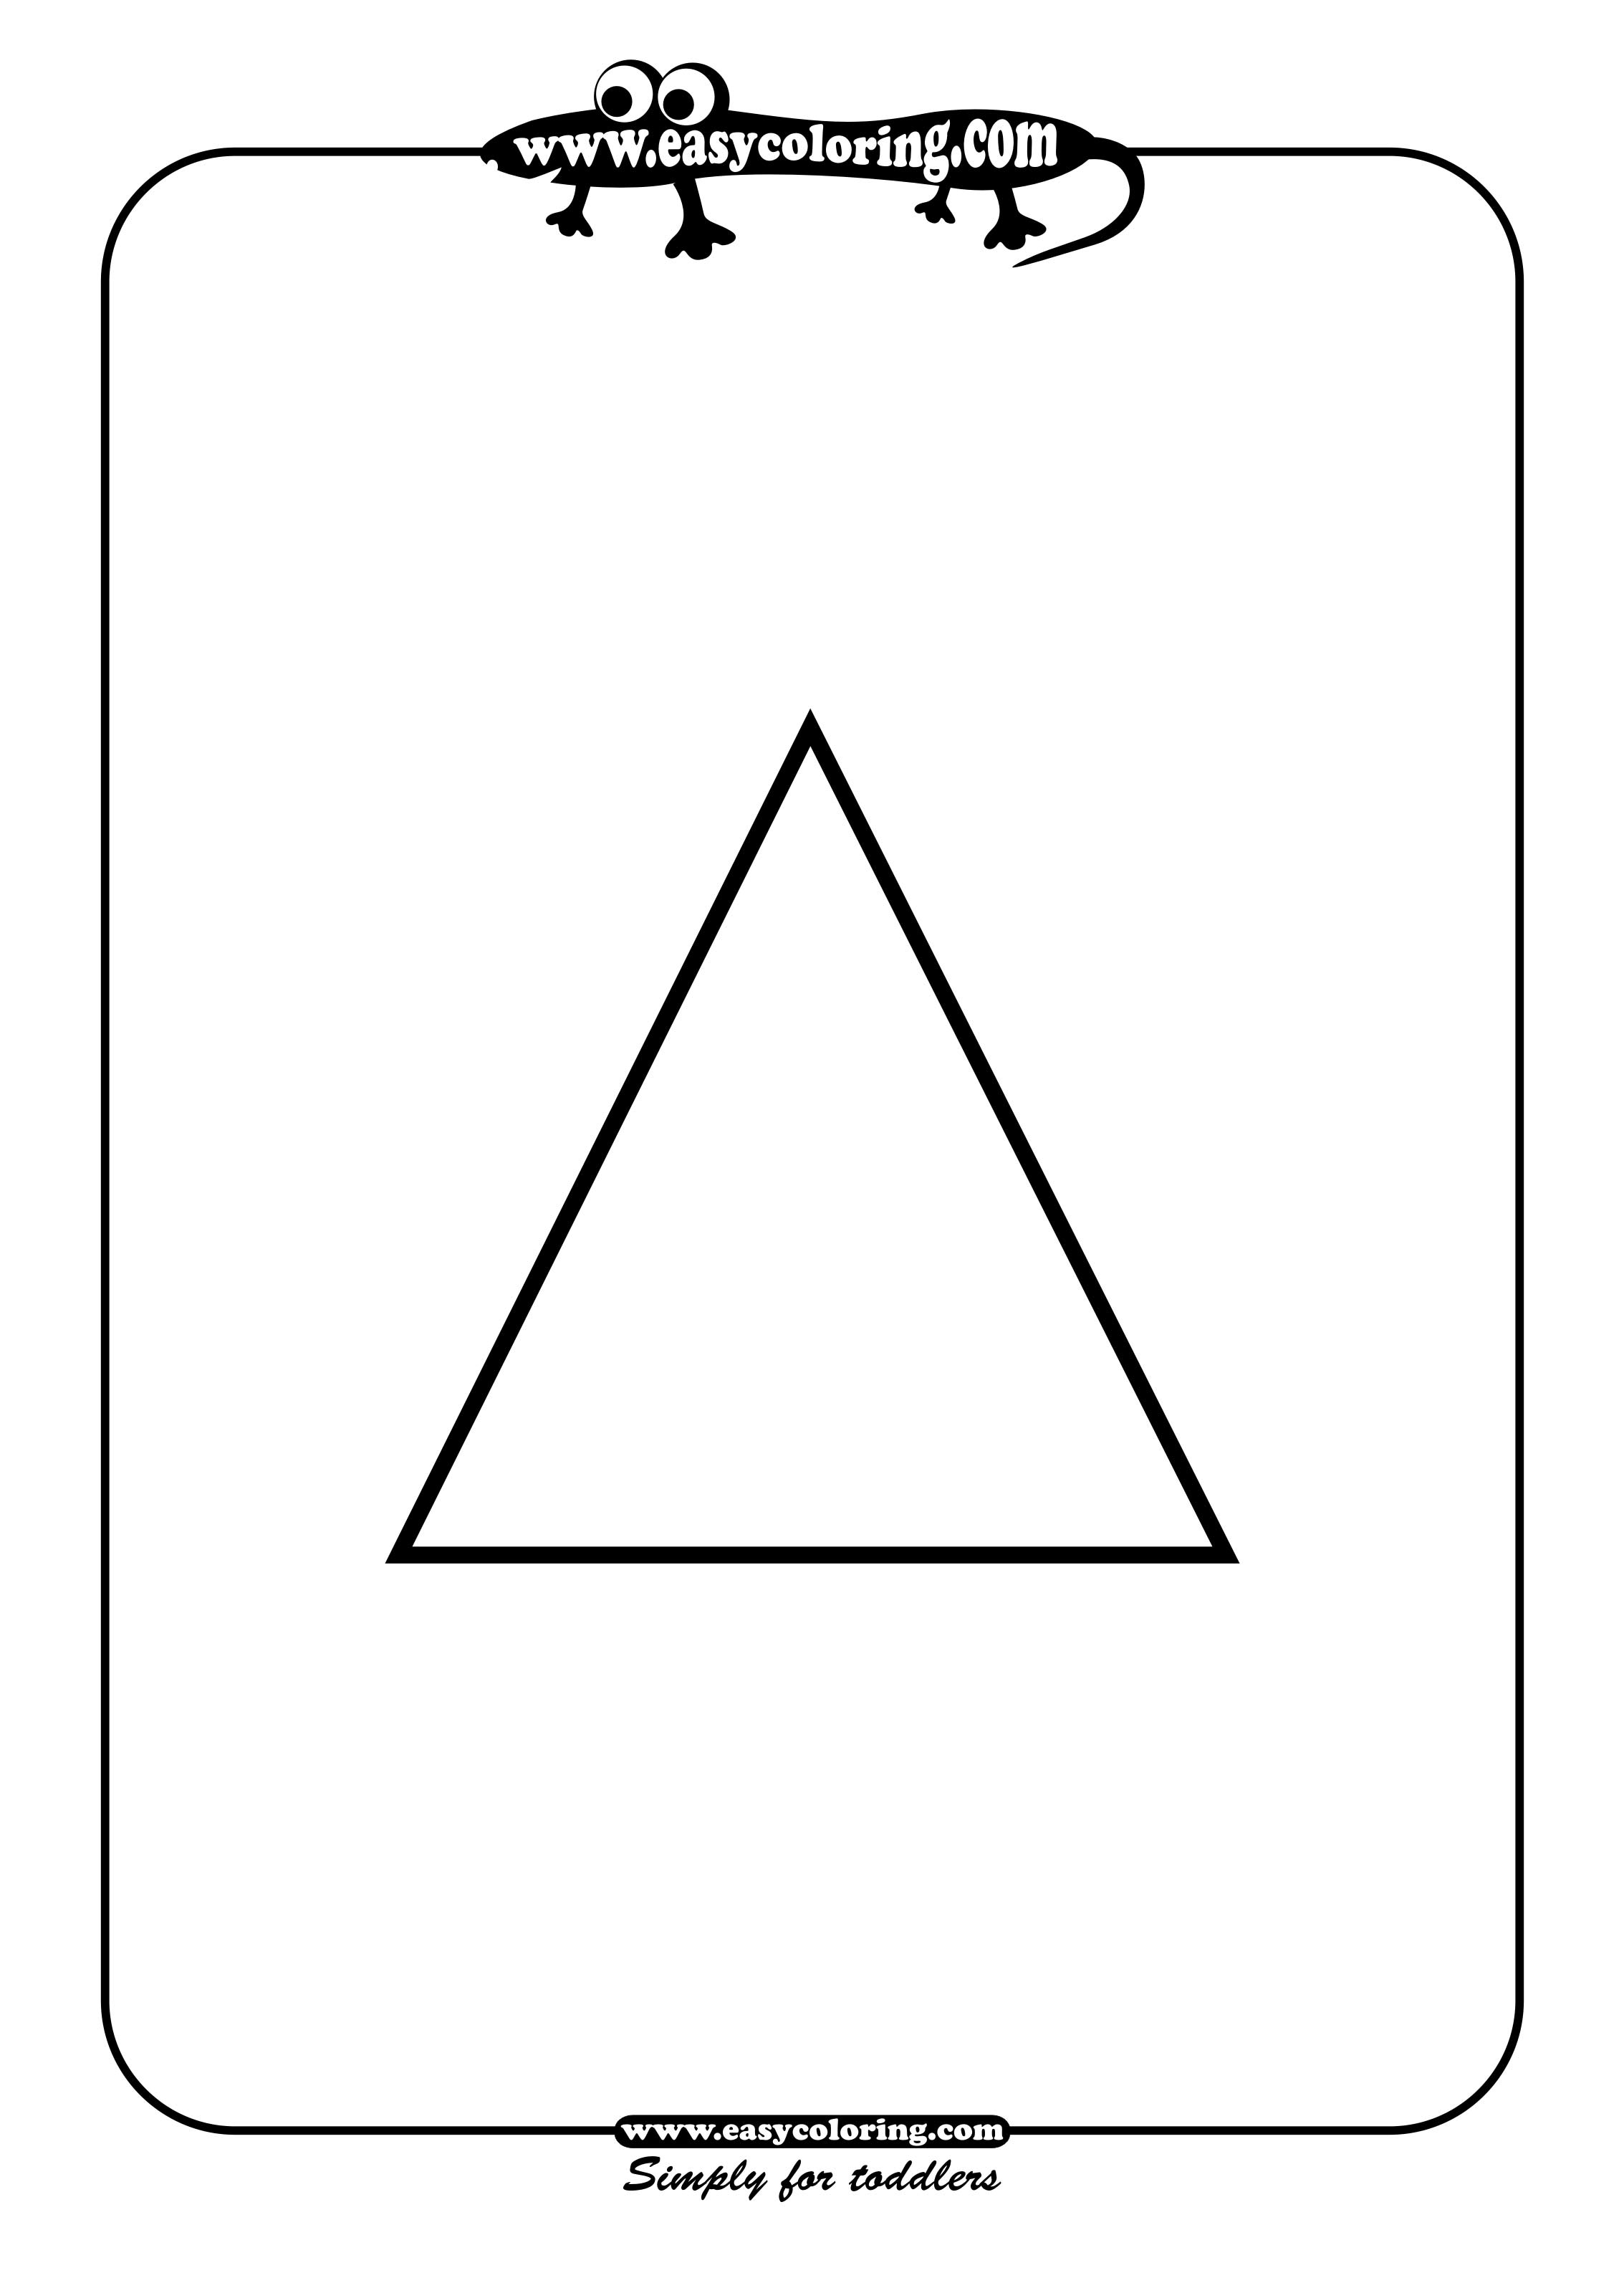 15 Best Images Of Easy Triangle Area Worksheet